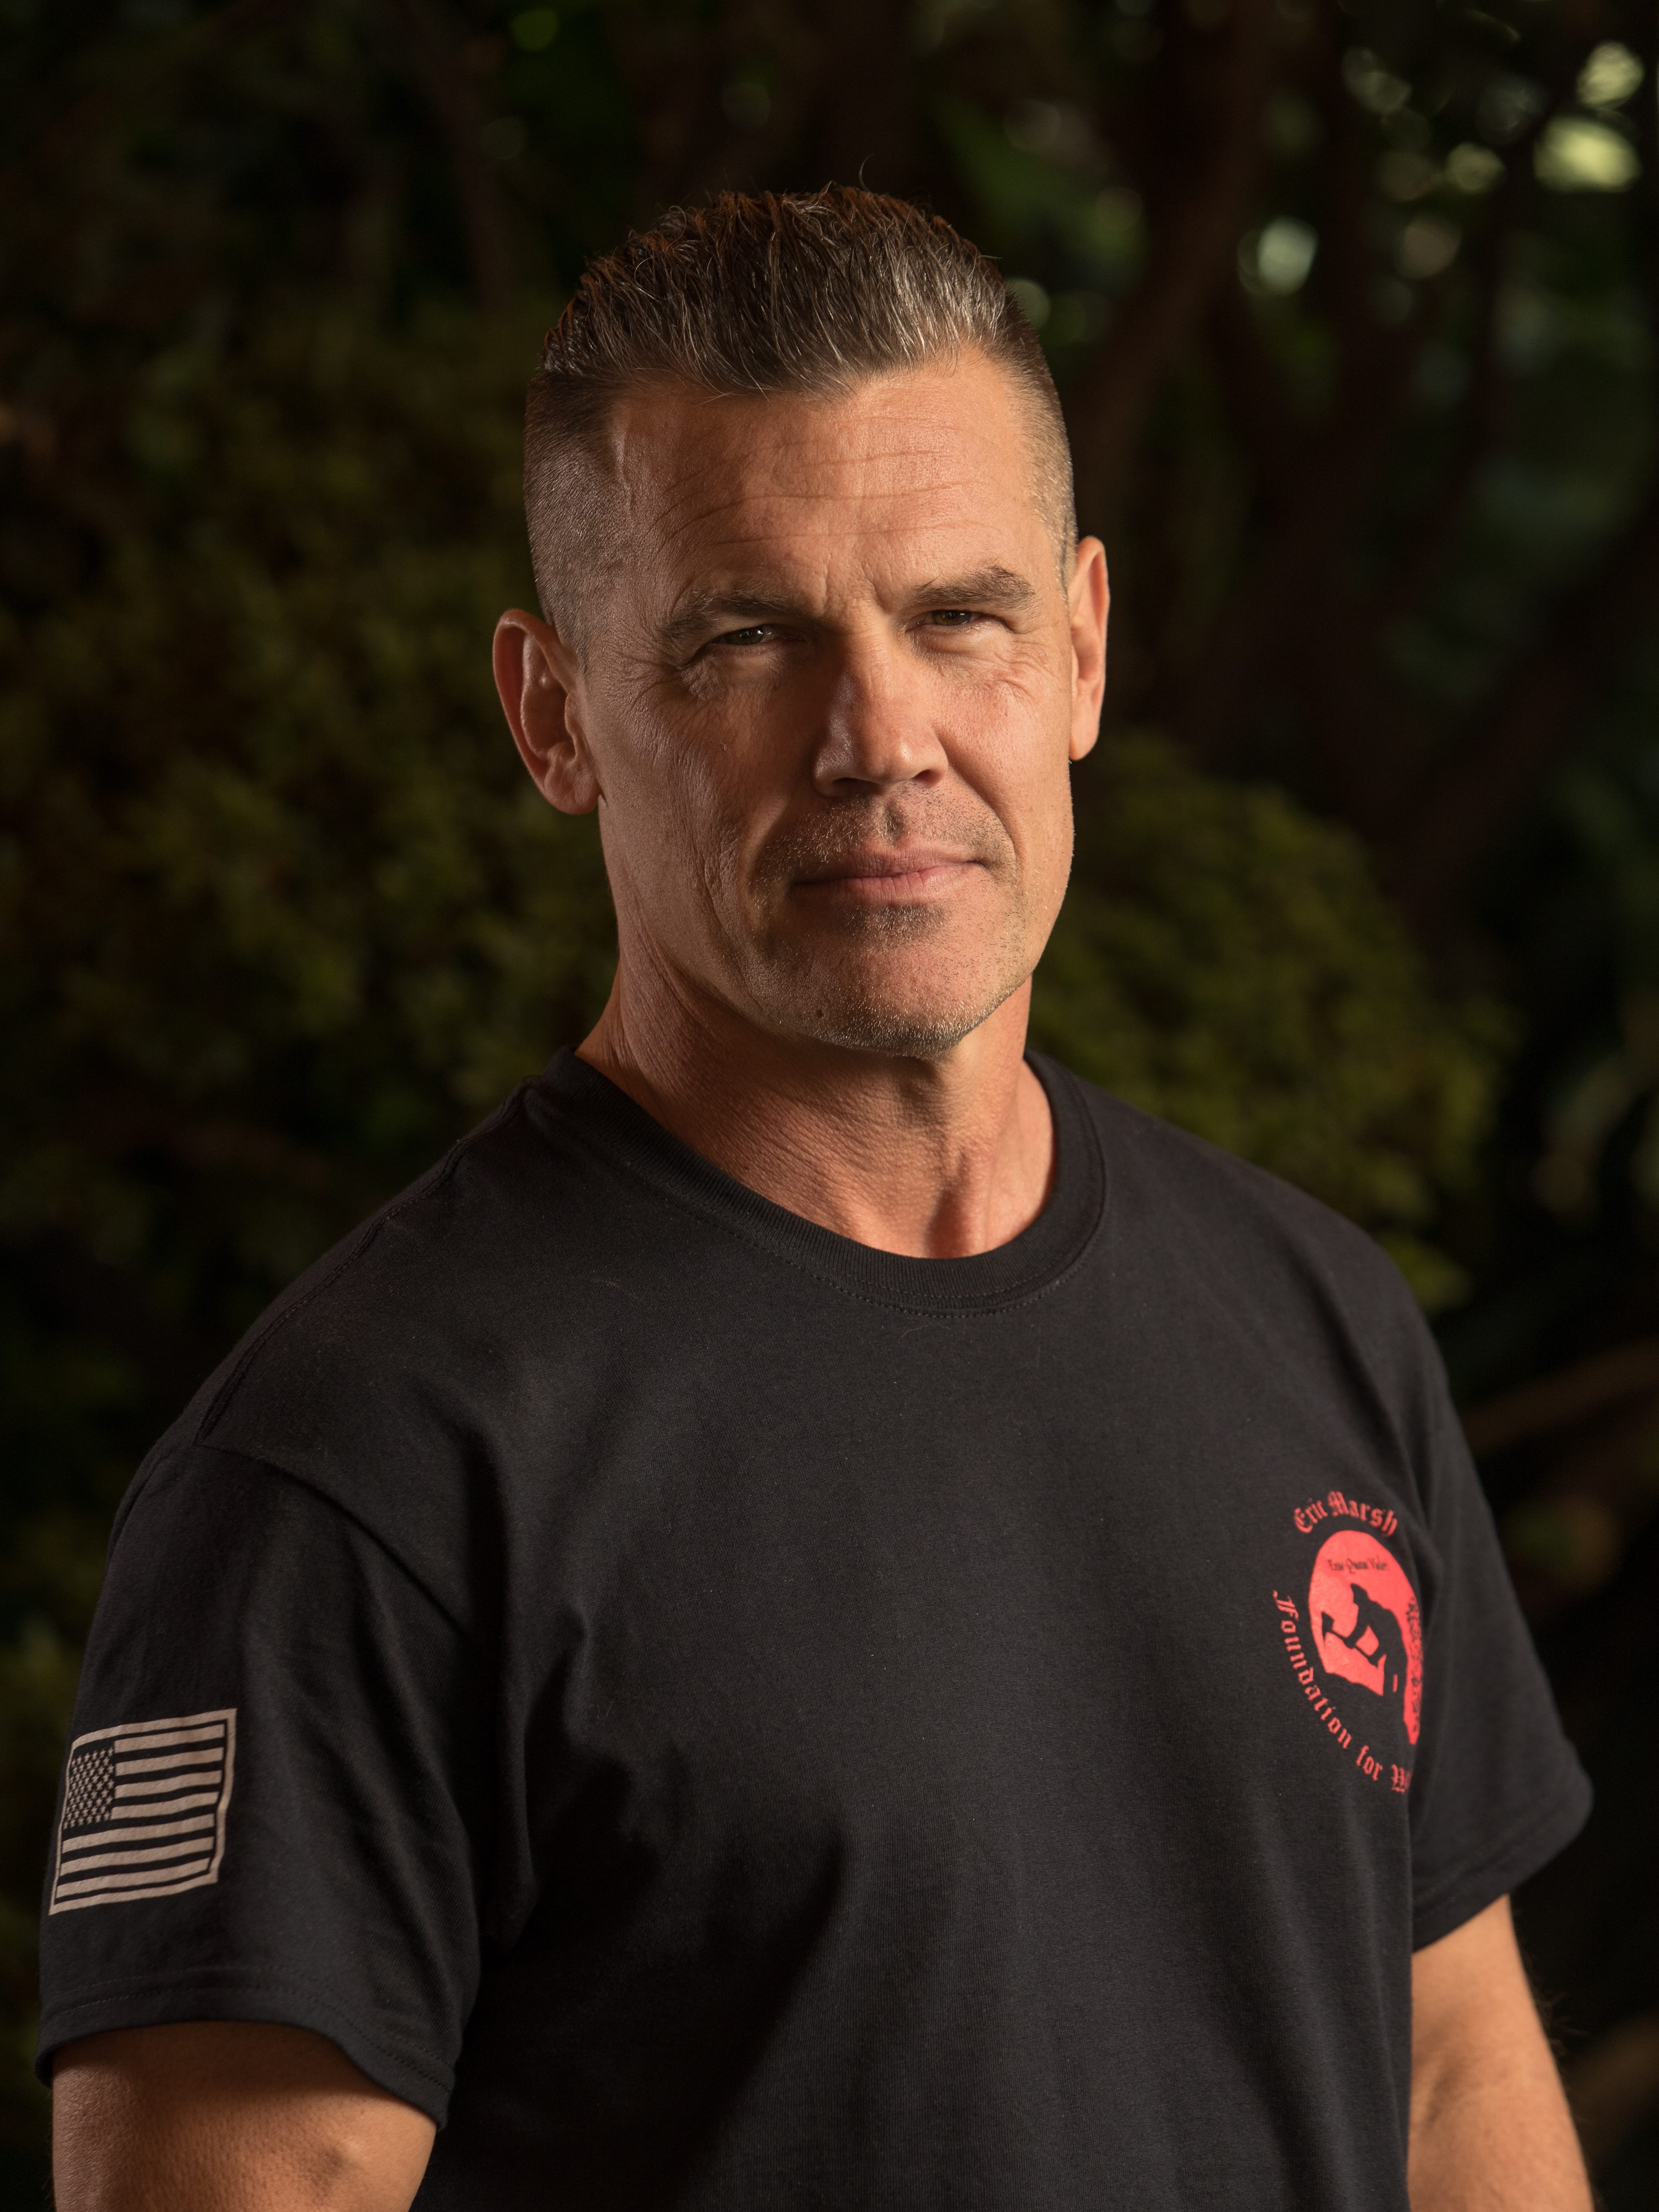 Josh Brolin Brings Heat As A Heroic Firefighter In Only The Brave